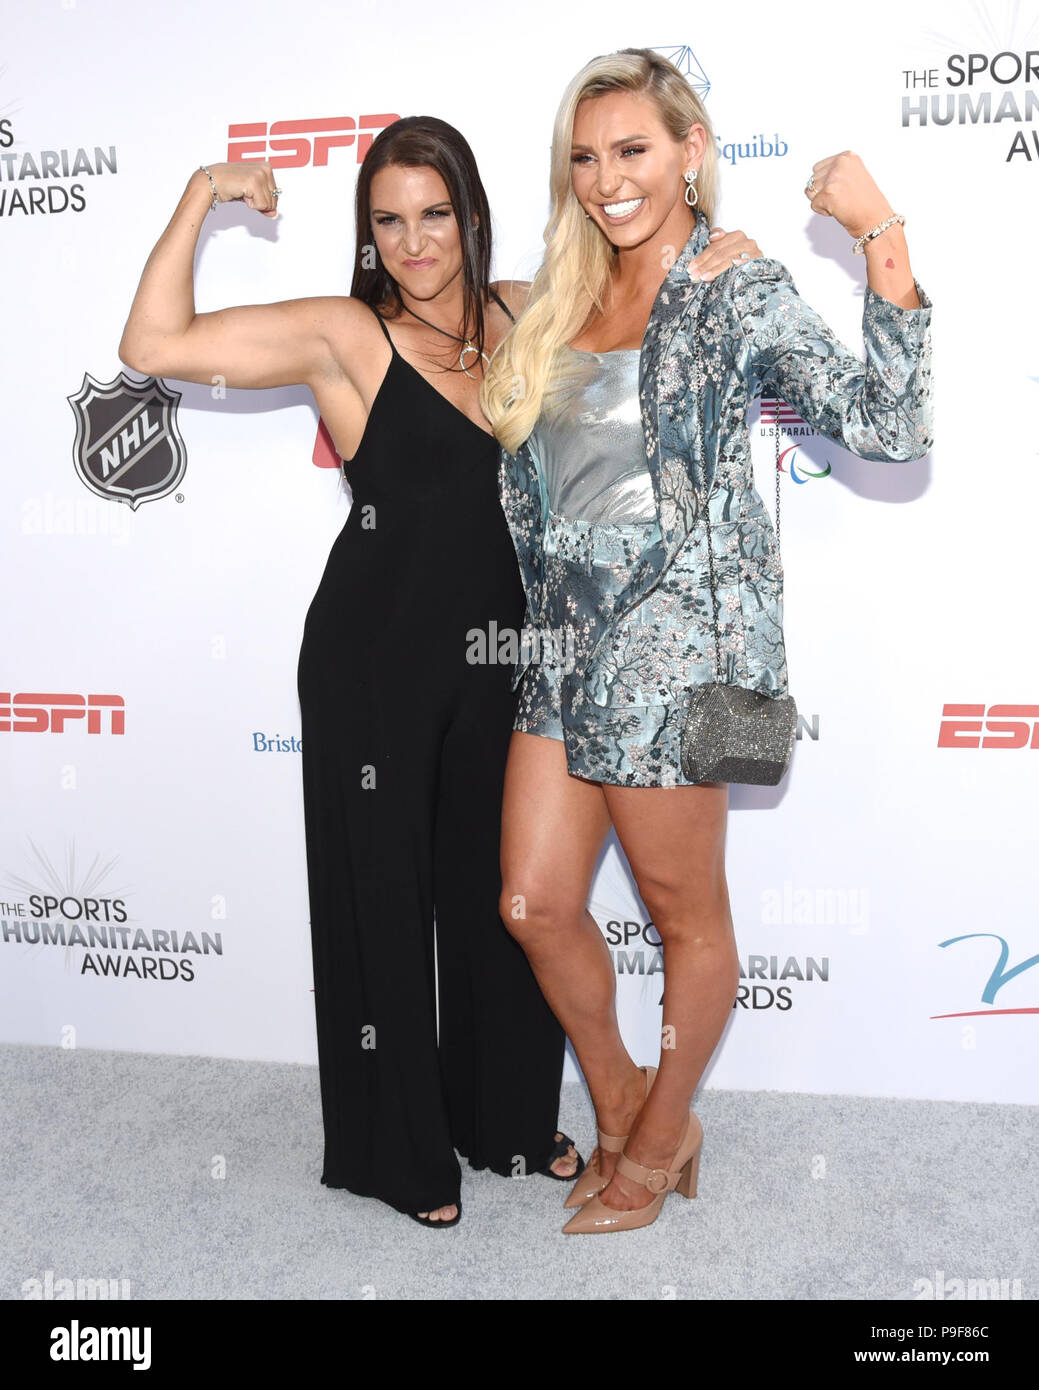 Los Angeles, California, USA. 17th July, 2018. STEPHANIE MCMAHON and CHARLOTTE FLAIR attends the 4th Annual Sports Humanitarian Awards at LA LIVE'S The Novo in Los Angeles. Credit: Billy Bennight/ZUMA Wire/Alamy Live News - Stock Image